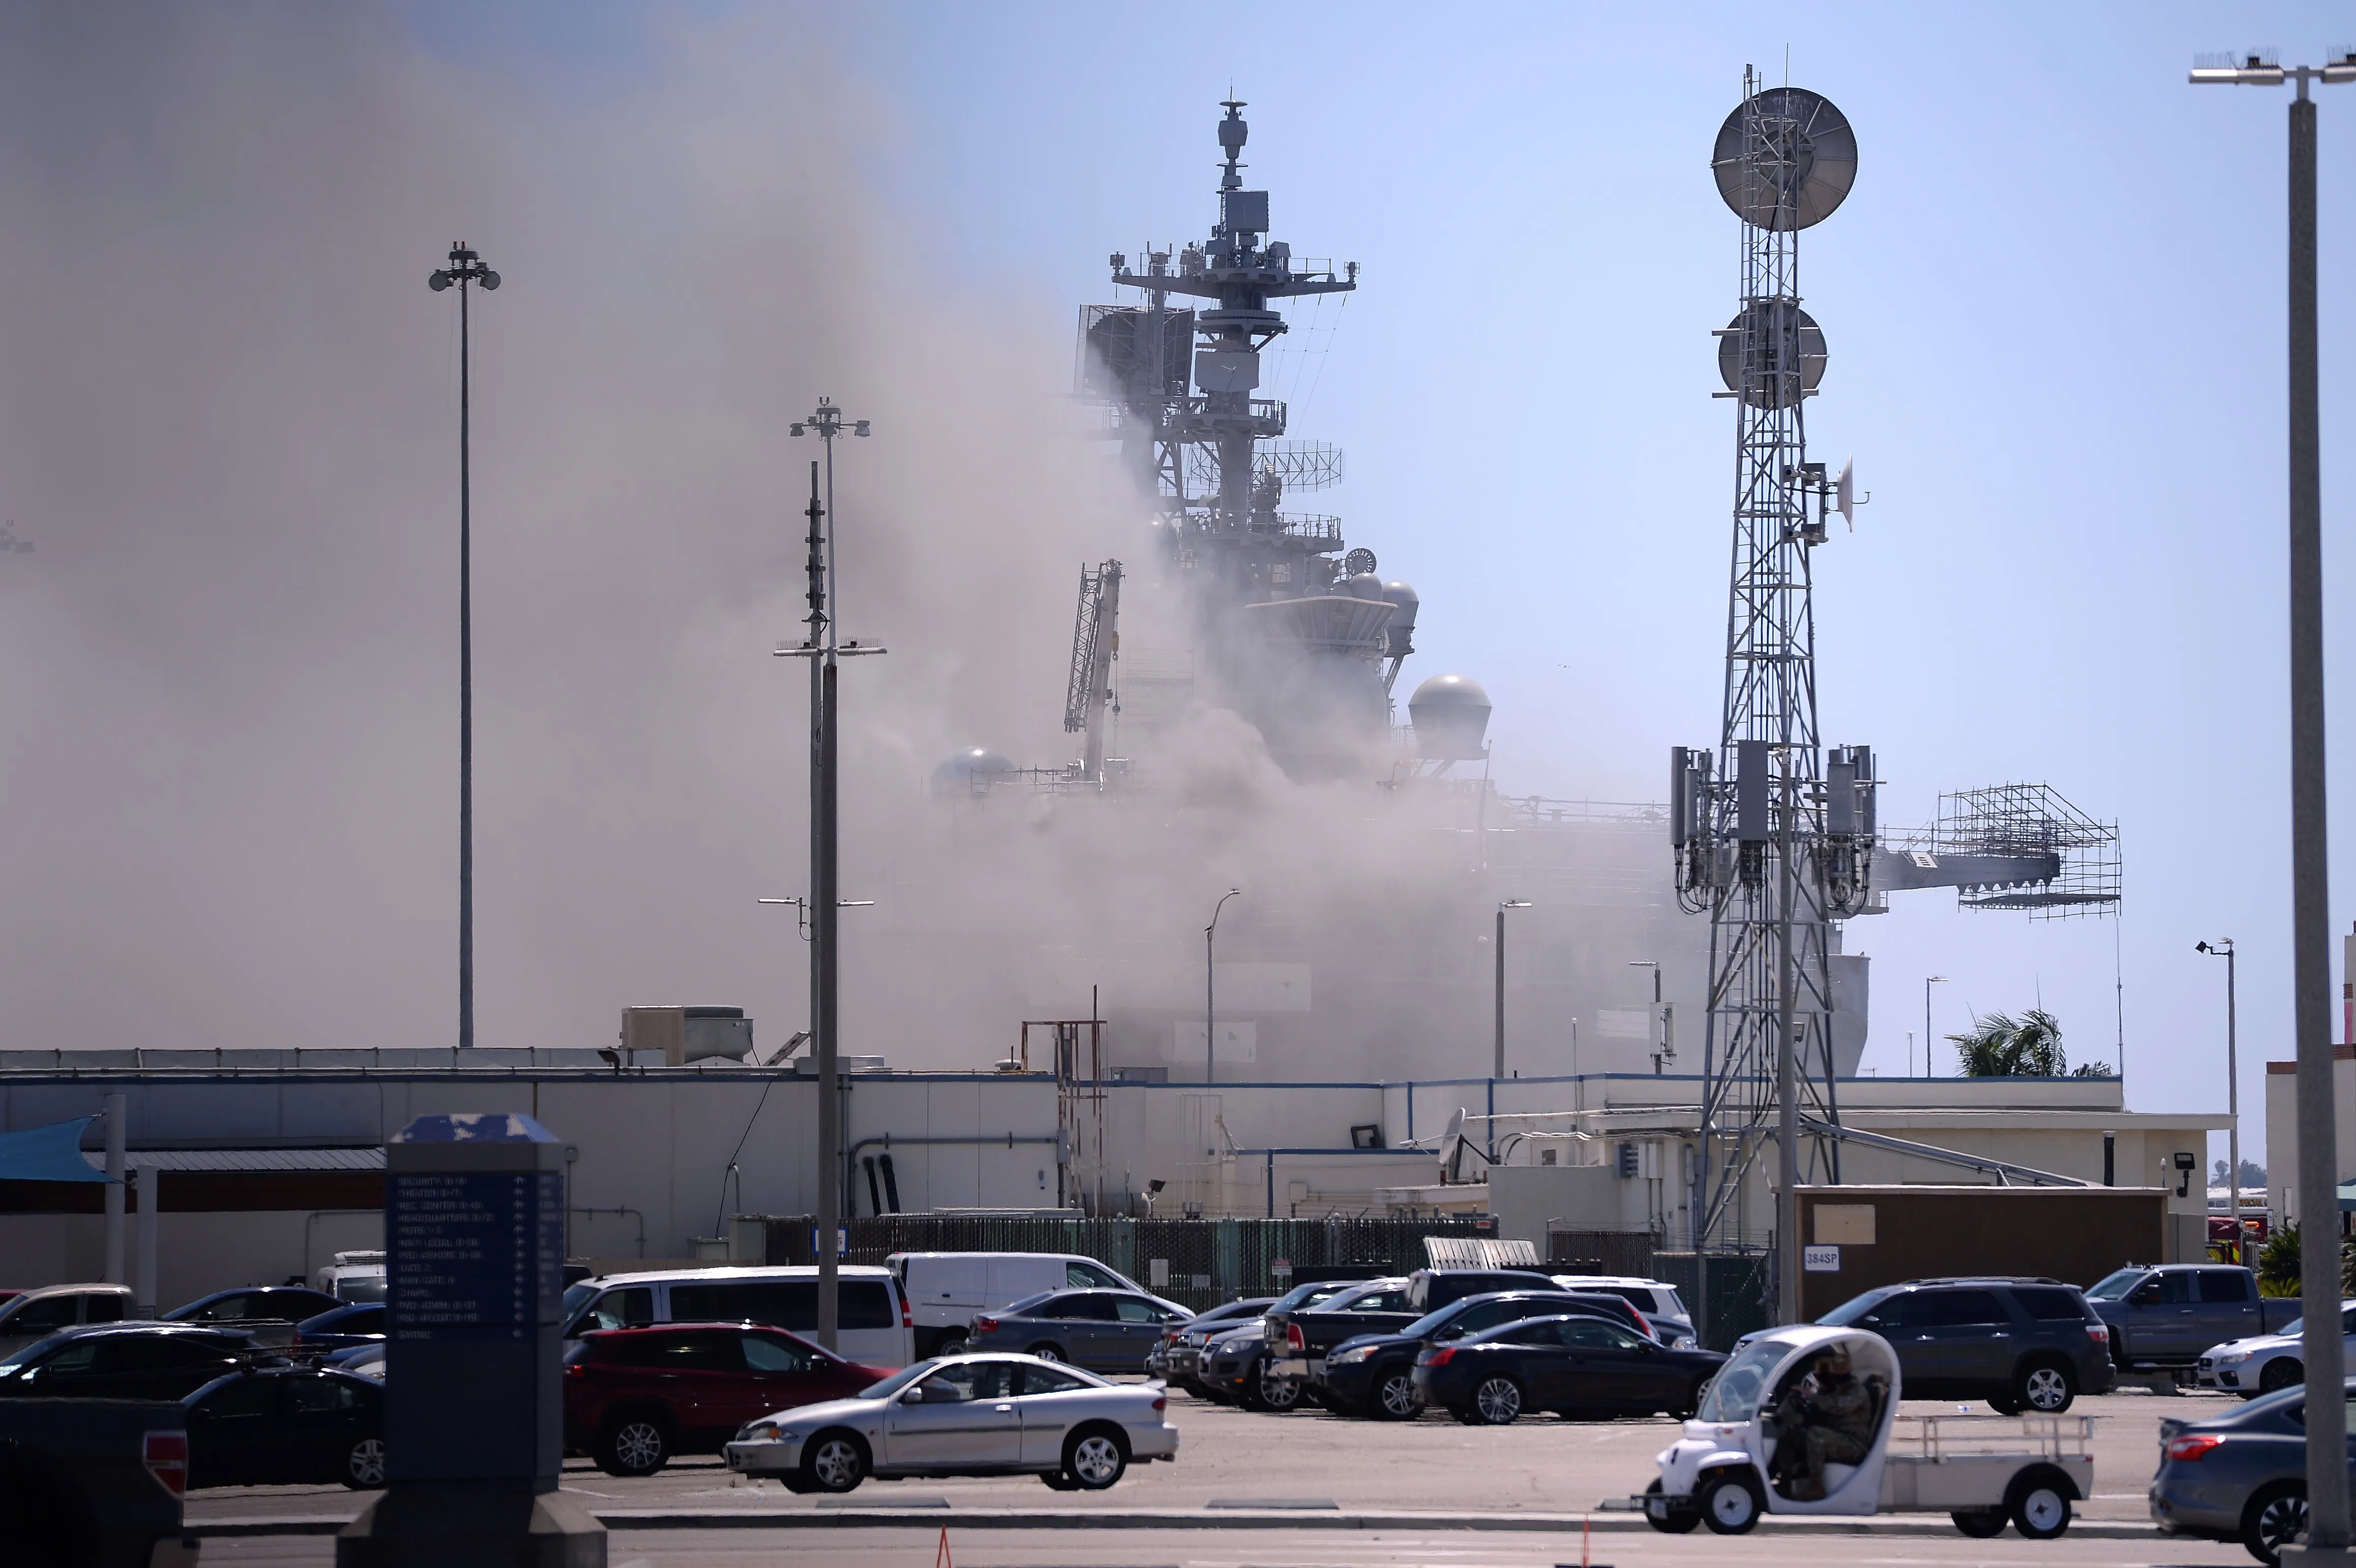 Fire Extinguished On Navy S Bonhomme Richard After Four Days